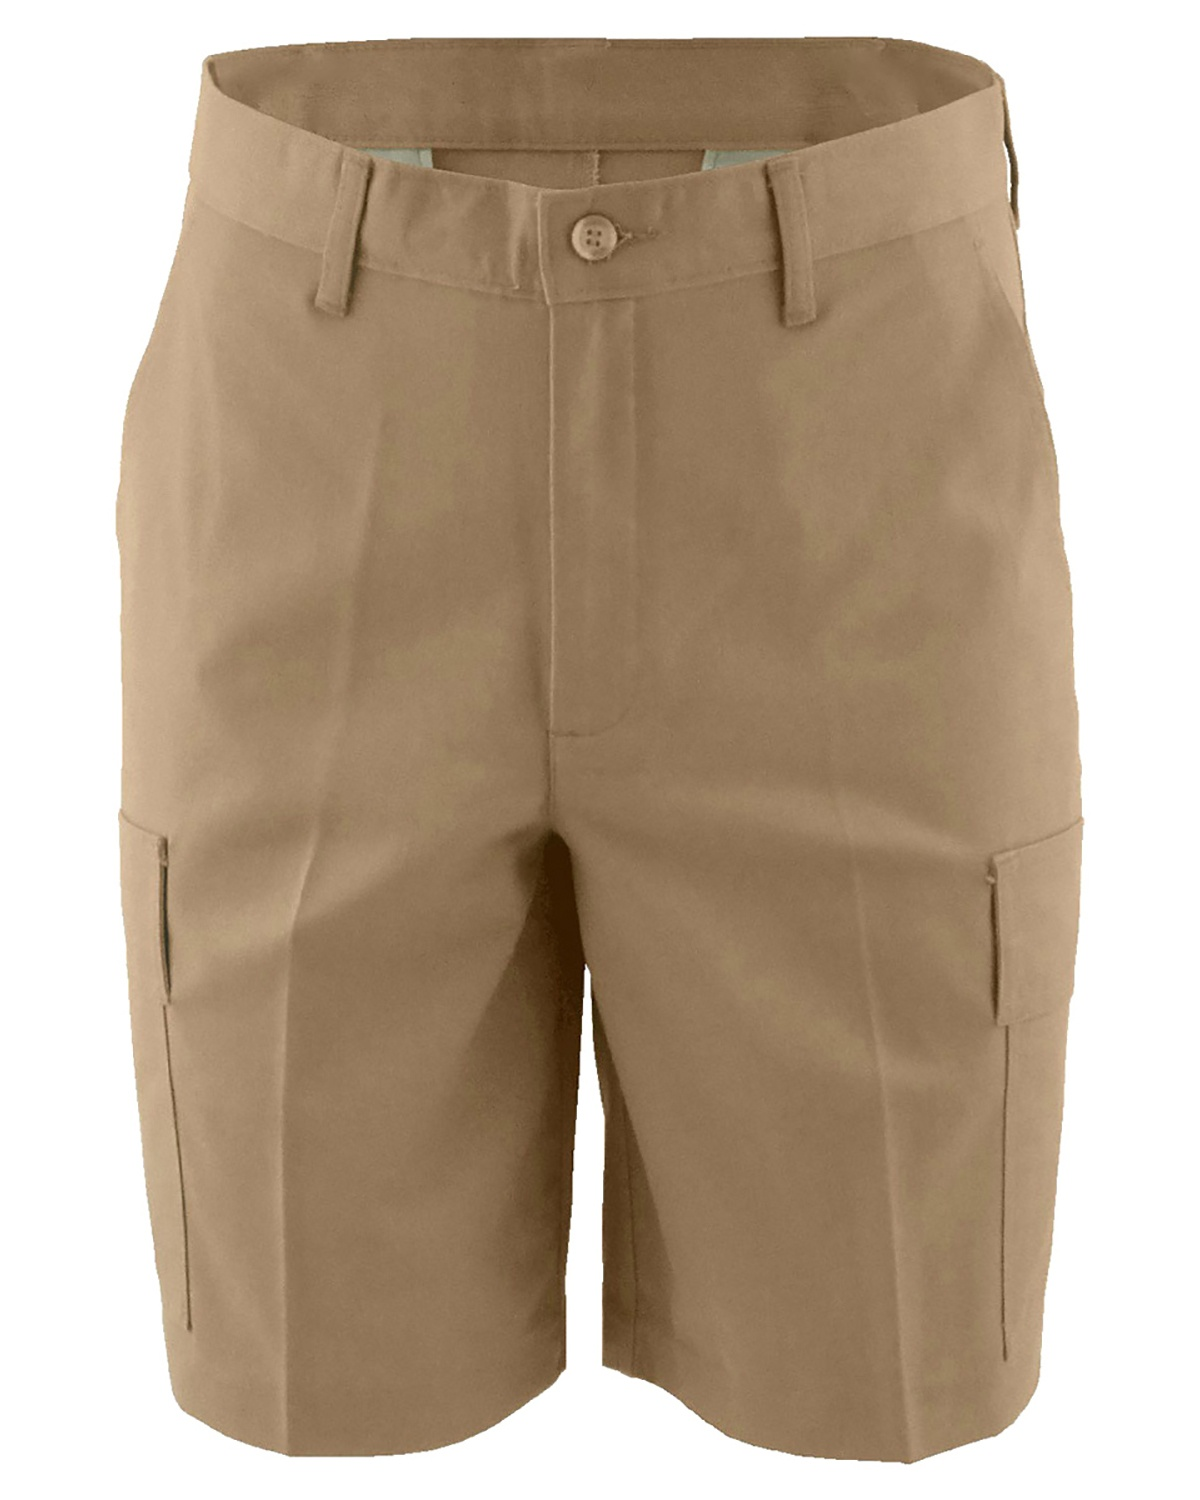 'Edwards 2477 Men's Utility Pleated Front Chino Short'